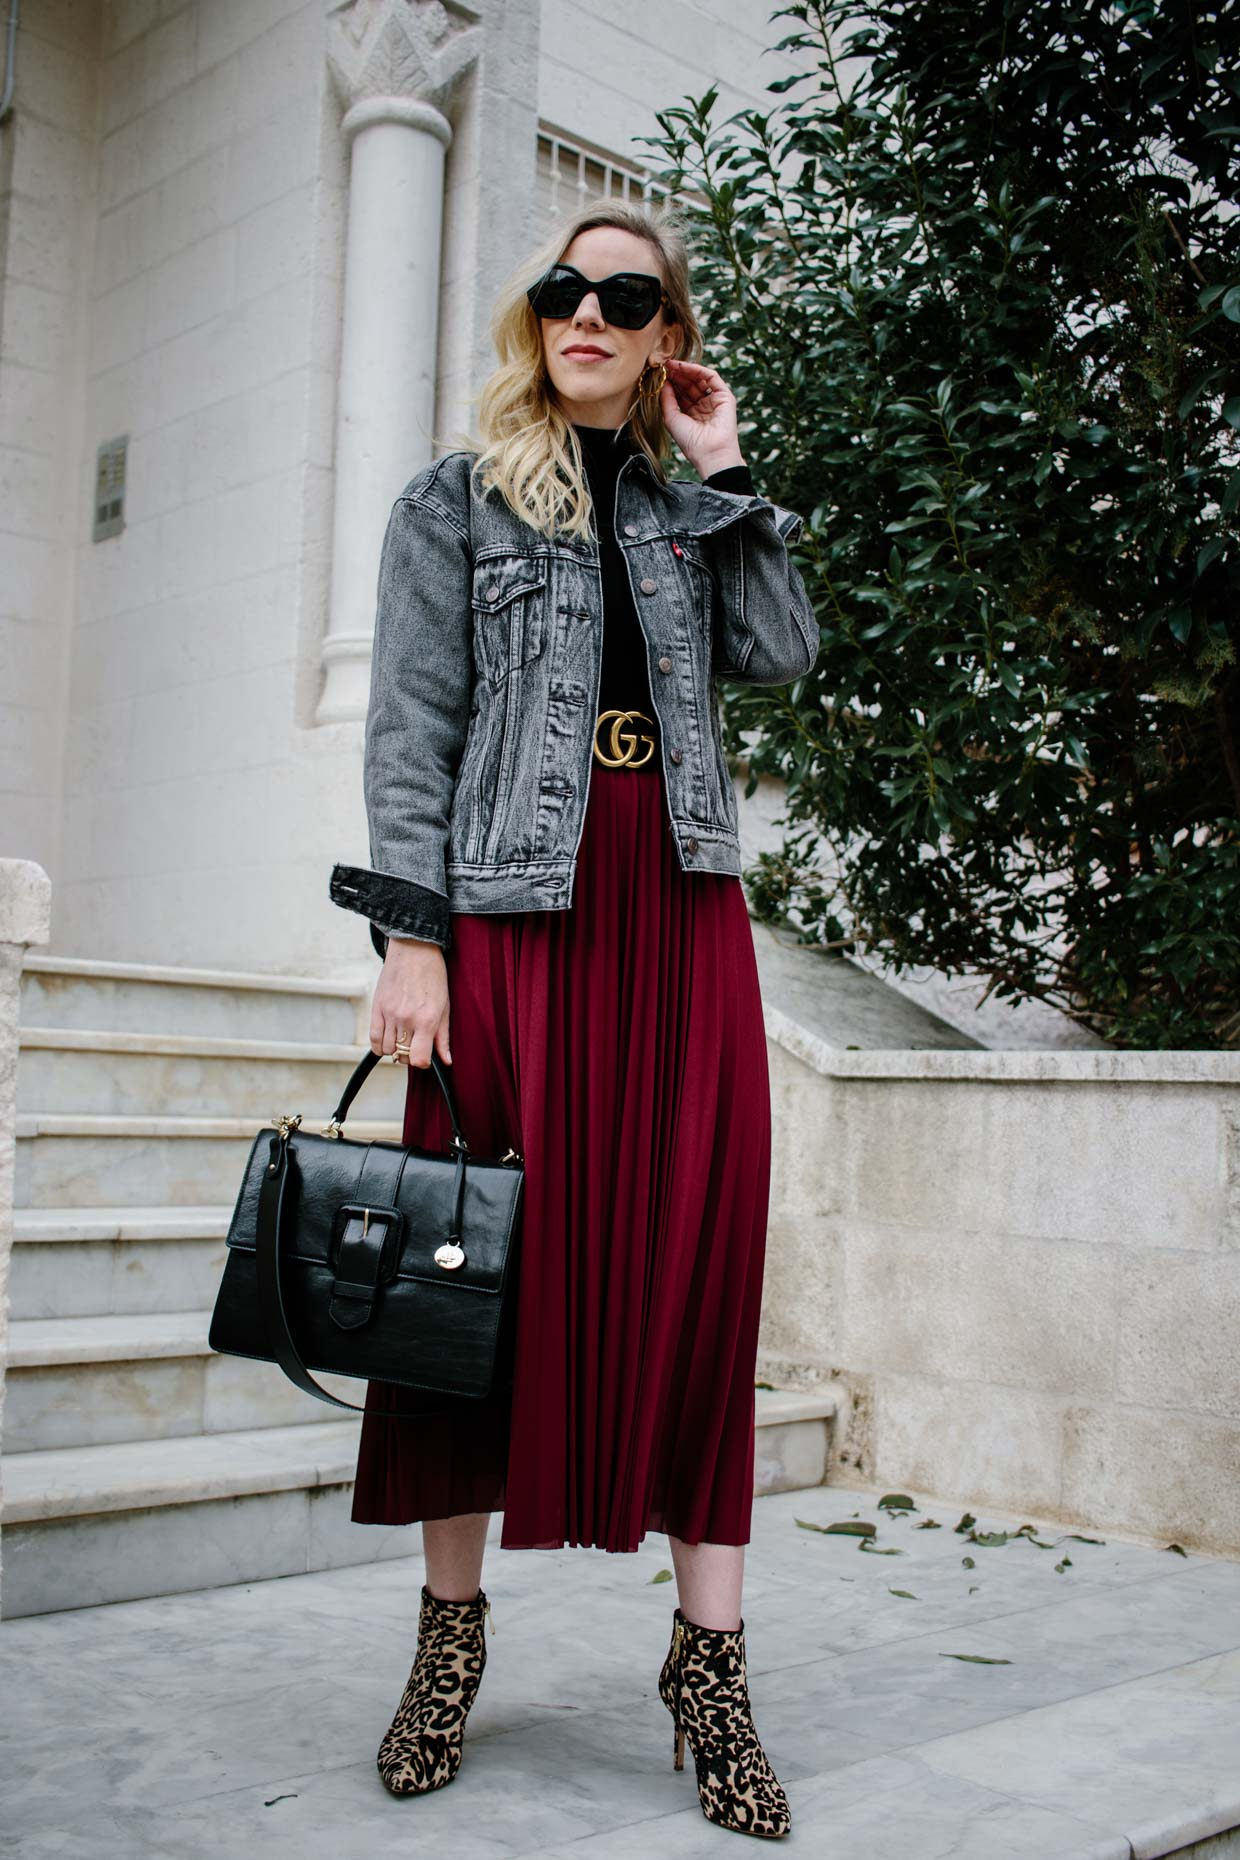 670c43ff256 Meagan Brandon fashion blogger of Meagan's Moda shows how to style a  burgundy pleated skirt with